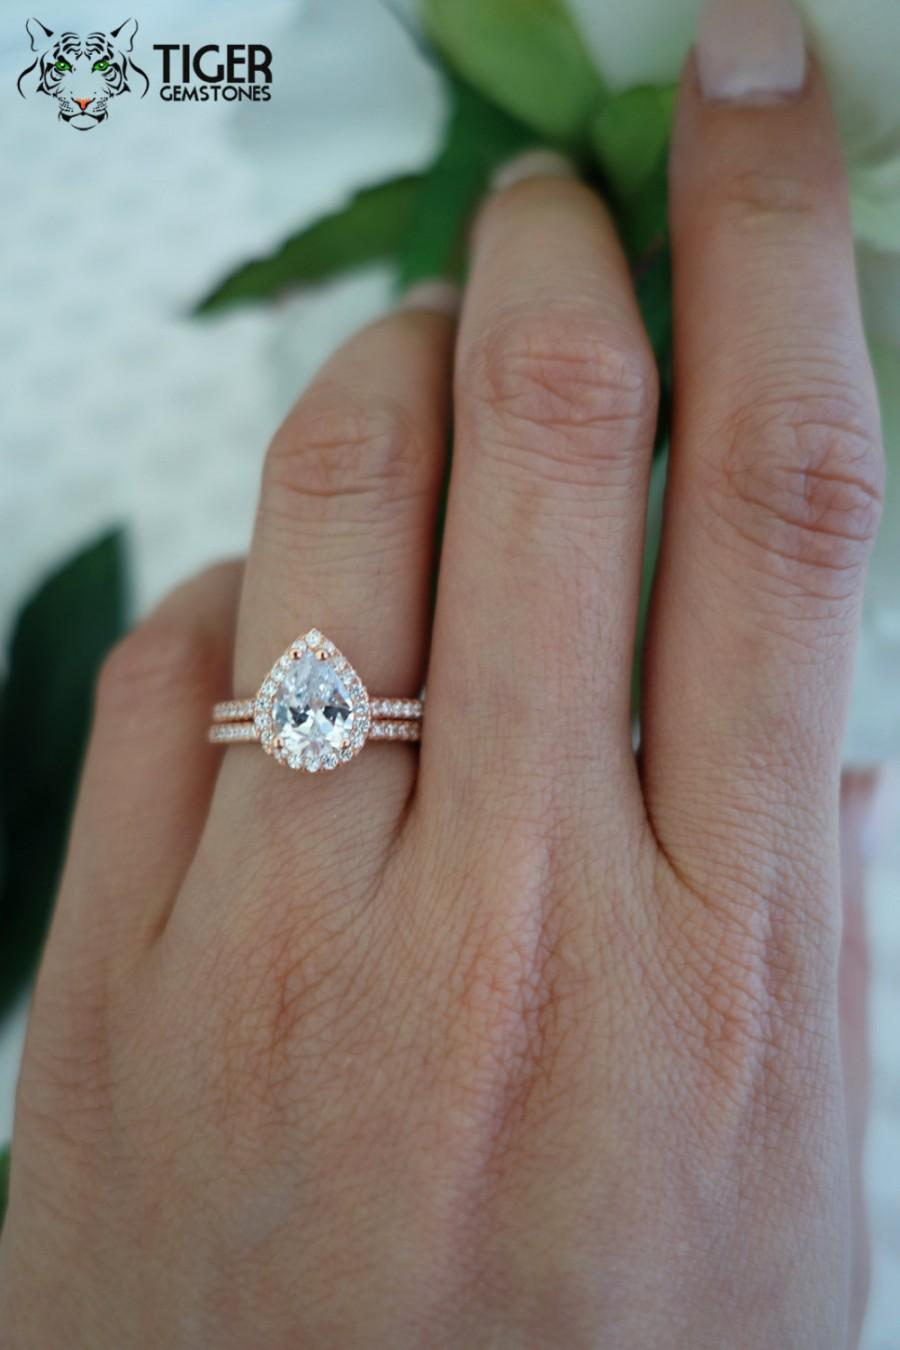 15 carat pear cut halo engagement ring wedding band flawless man made diamond simulants wedding ring sterling silver rose gold plated - Wedding Band For Halo Engagement Ring